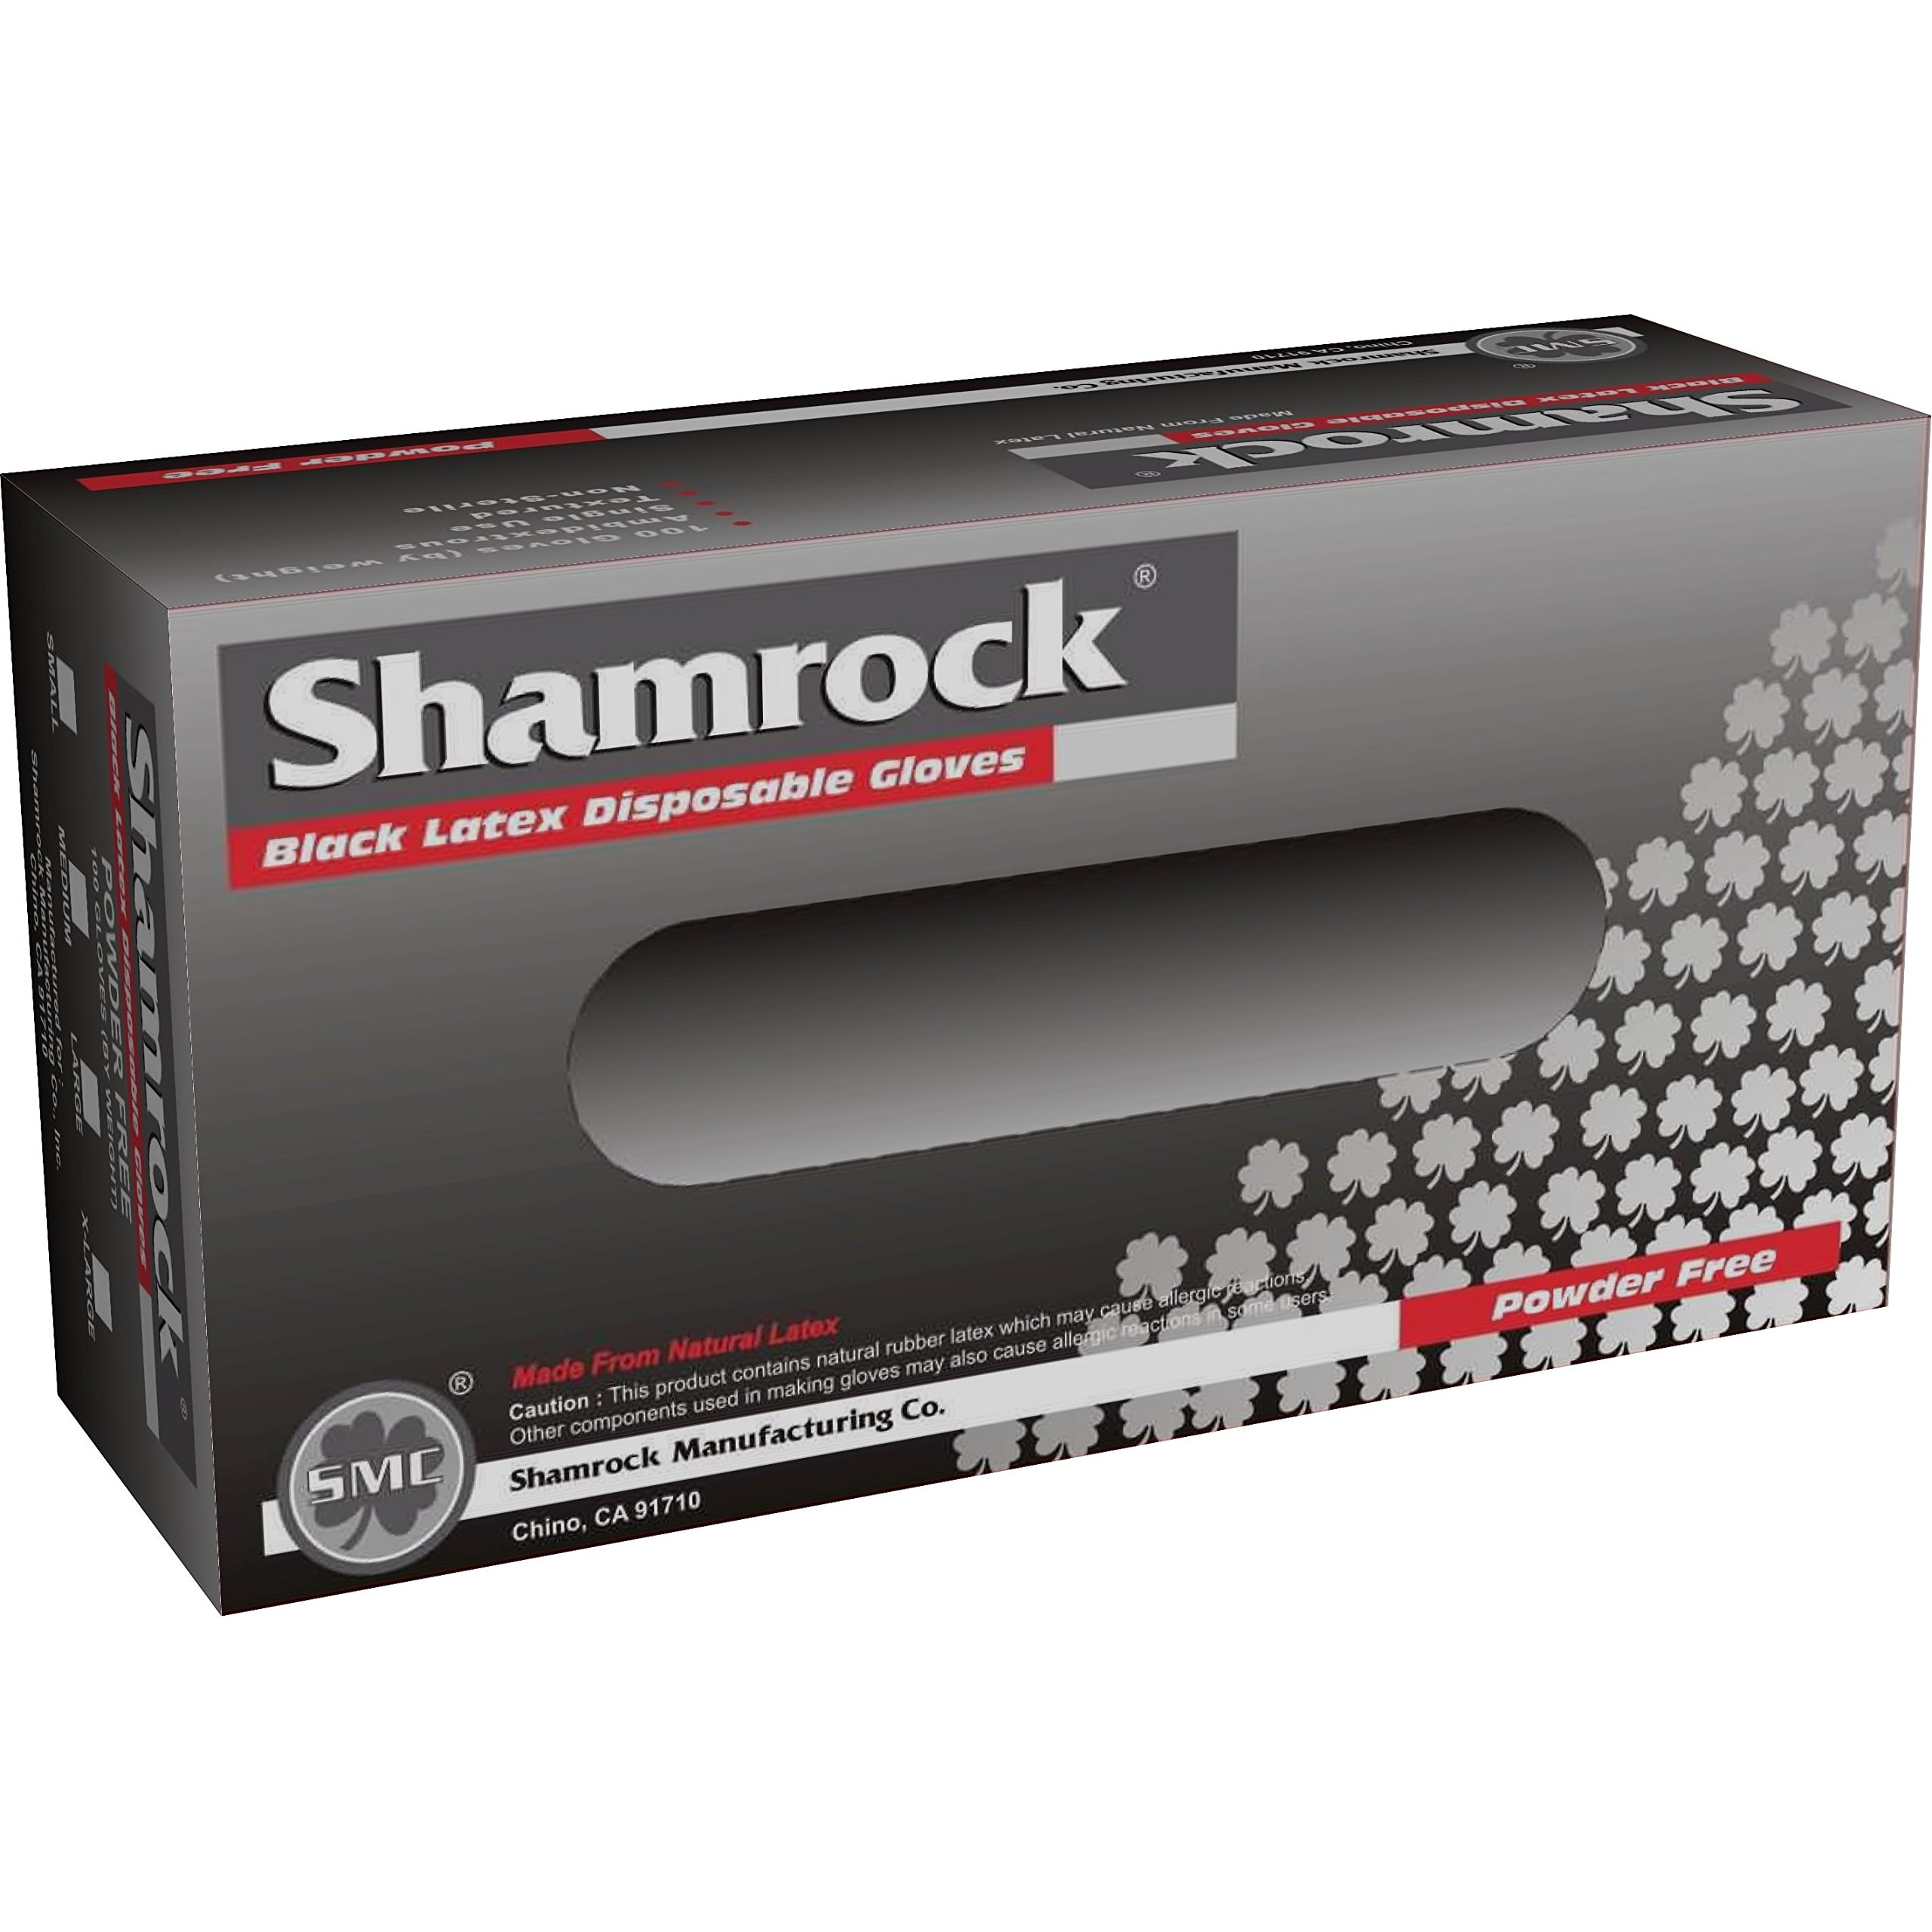 Shamrock Black Latex Disposable Gloves Powder-Free Textured (Case of 1000) xsmall by Shamrock